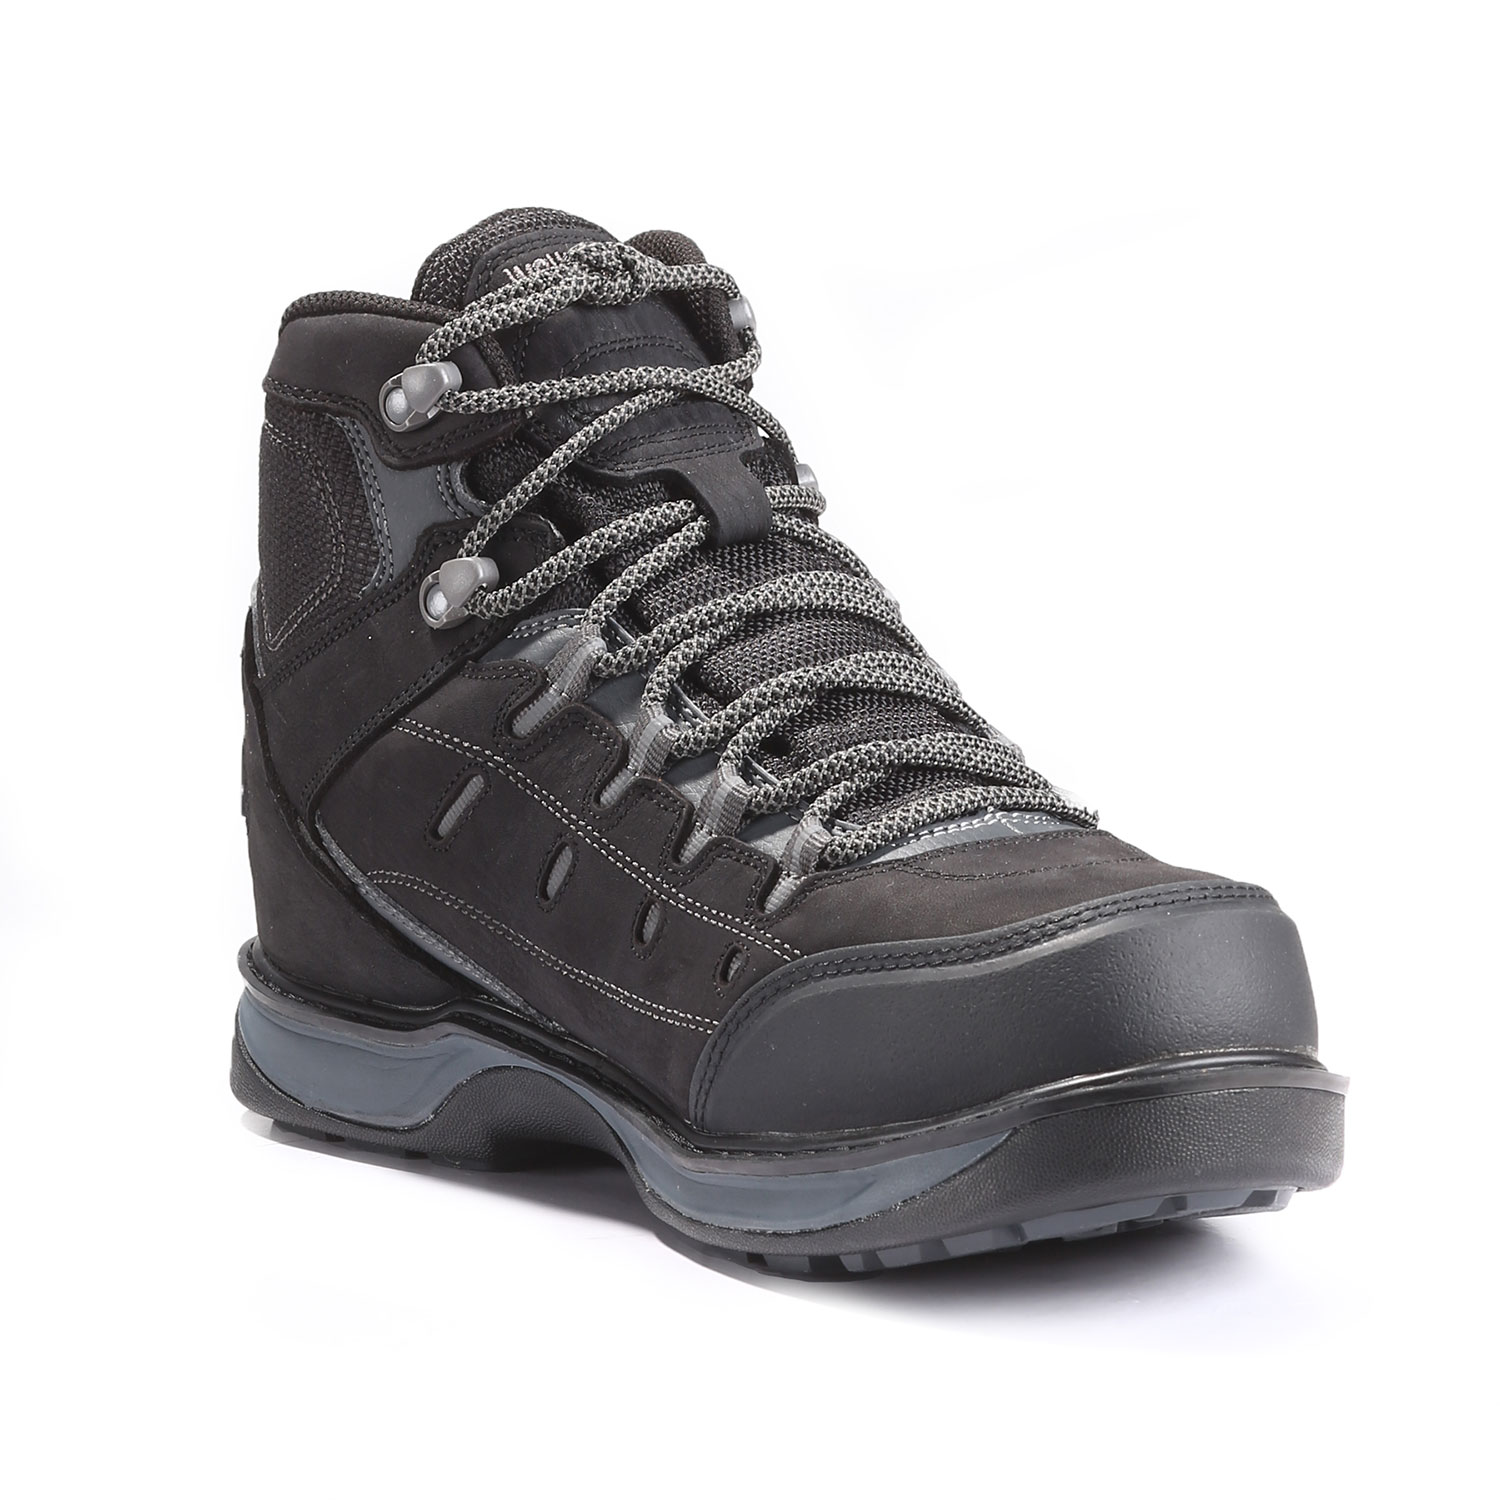 7d6a2c49ec3 Wolverine Edge LX Waterproof Composite Toe Boot.